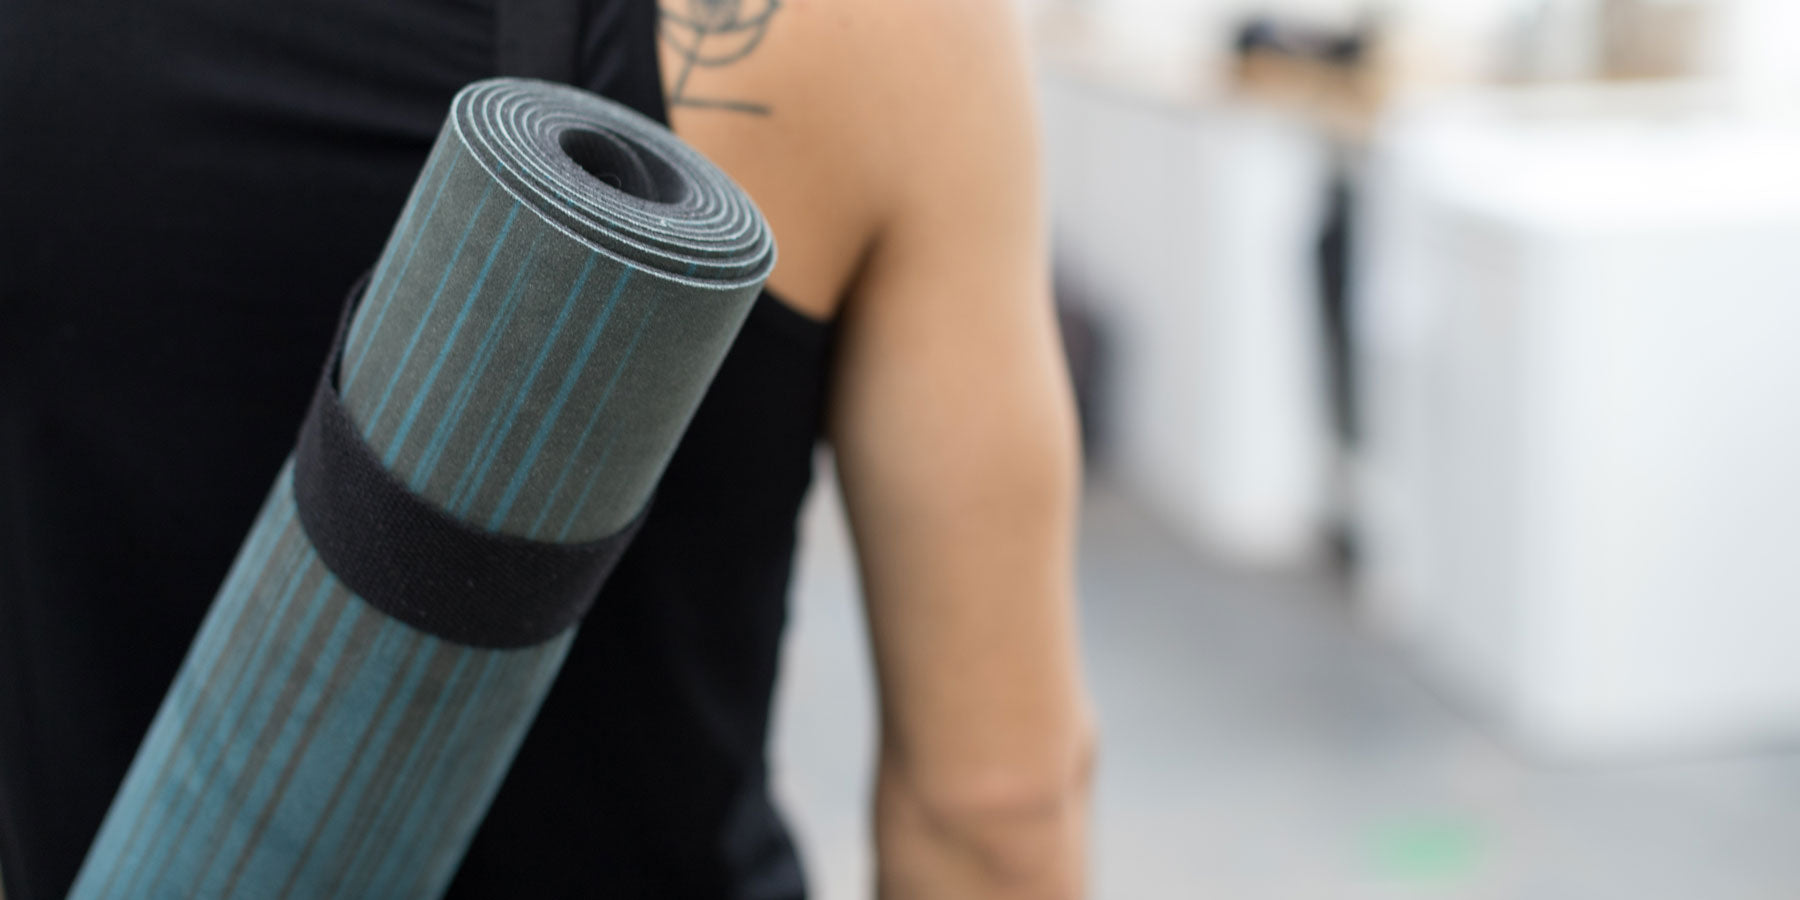 The best microfiber Alignment yoga mat by Zenagoy, Ocean blue color.